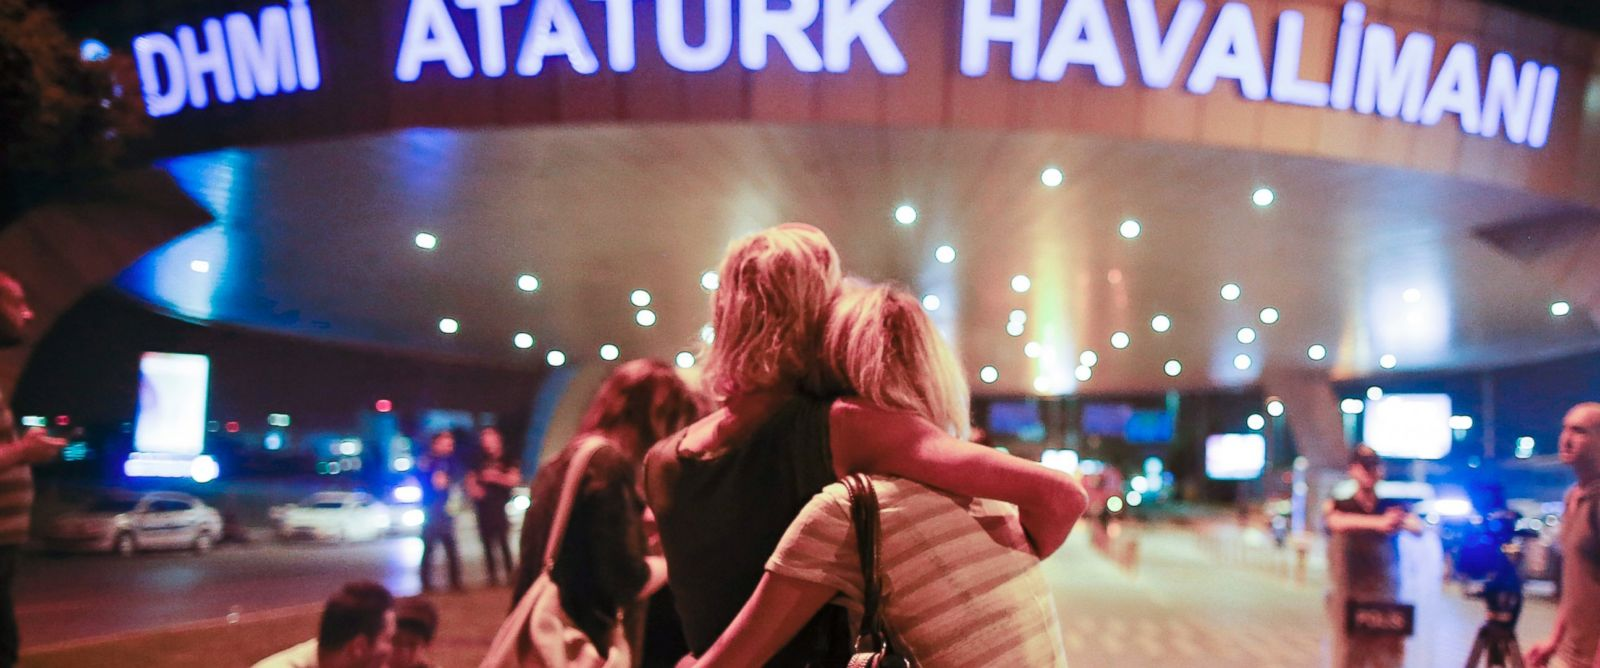 PHOTO: Passengers embrace each other at the entrance to Istanbuls Ataturk airport, early Wednesday, June 29, 2016 following their evacuation after a blast.